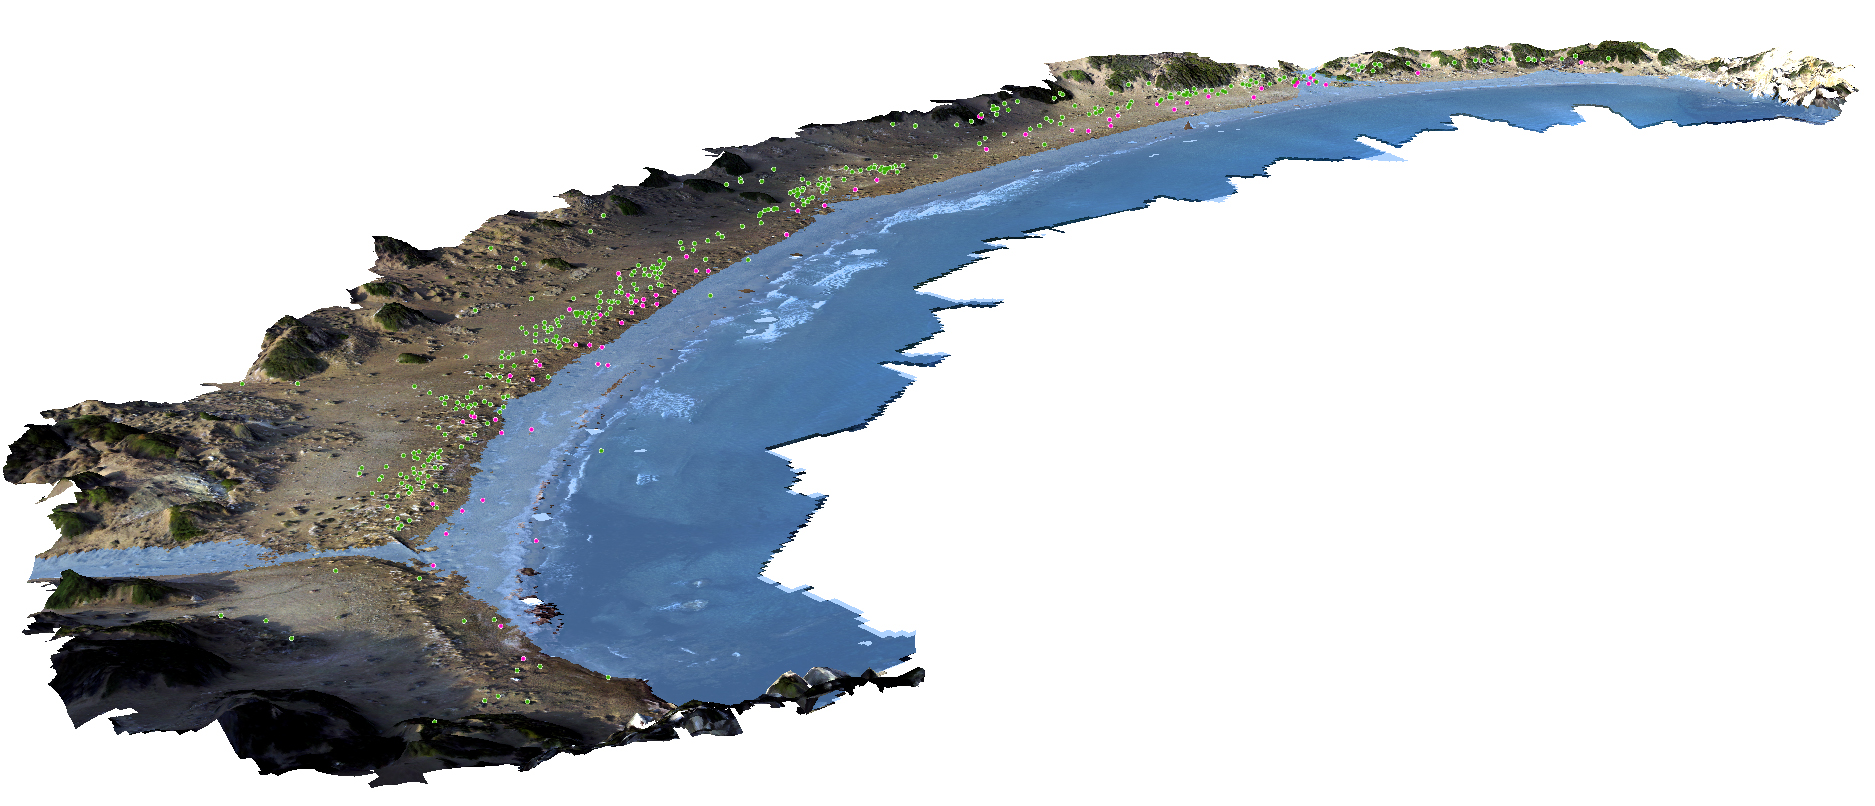 By stitching drone photos together through a process called photogrammetry, the researchers built 3D models of the coastline below. Green dots mark green turtle nests, pink dots mark loggerhead turtle nests.